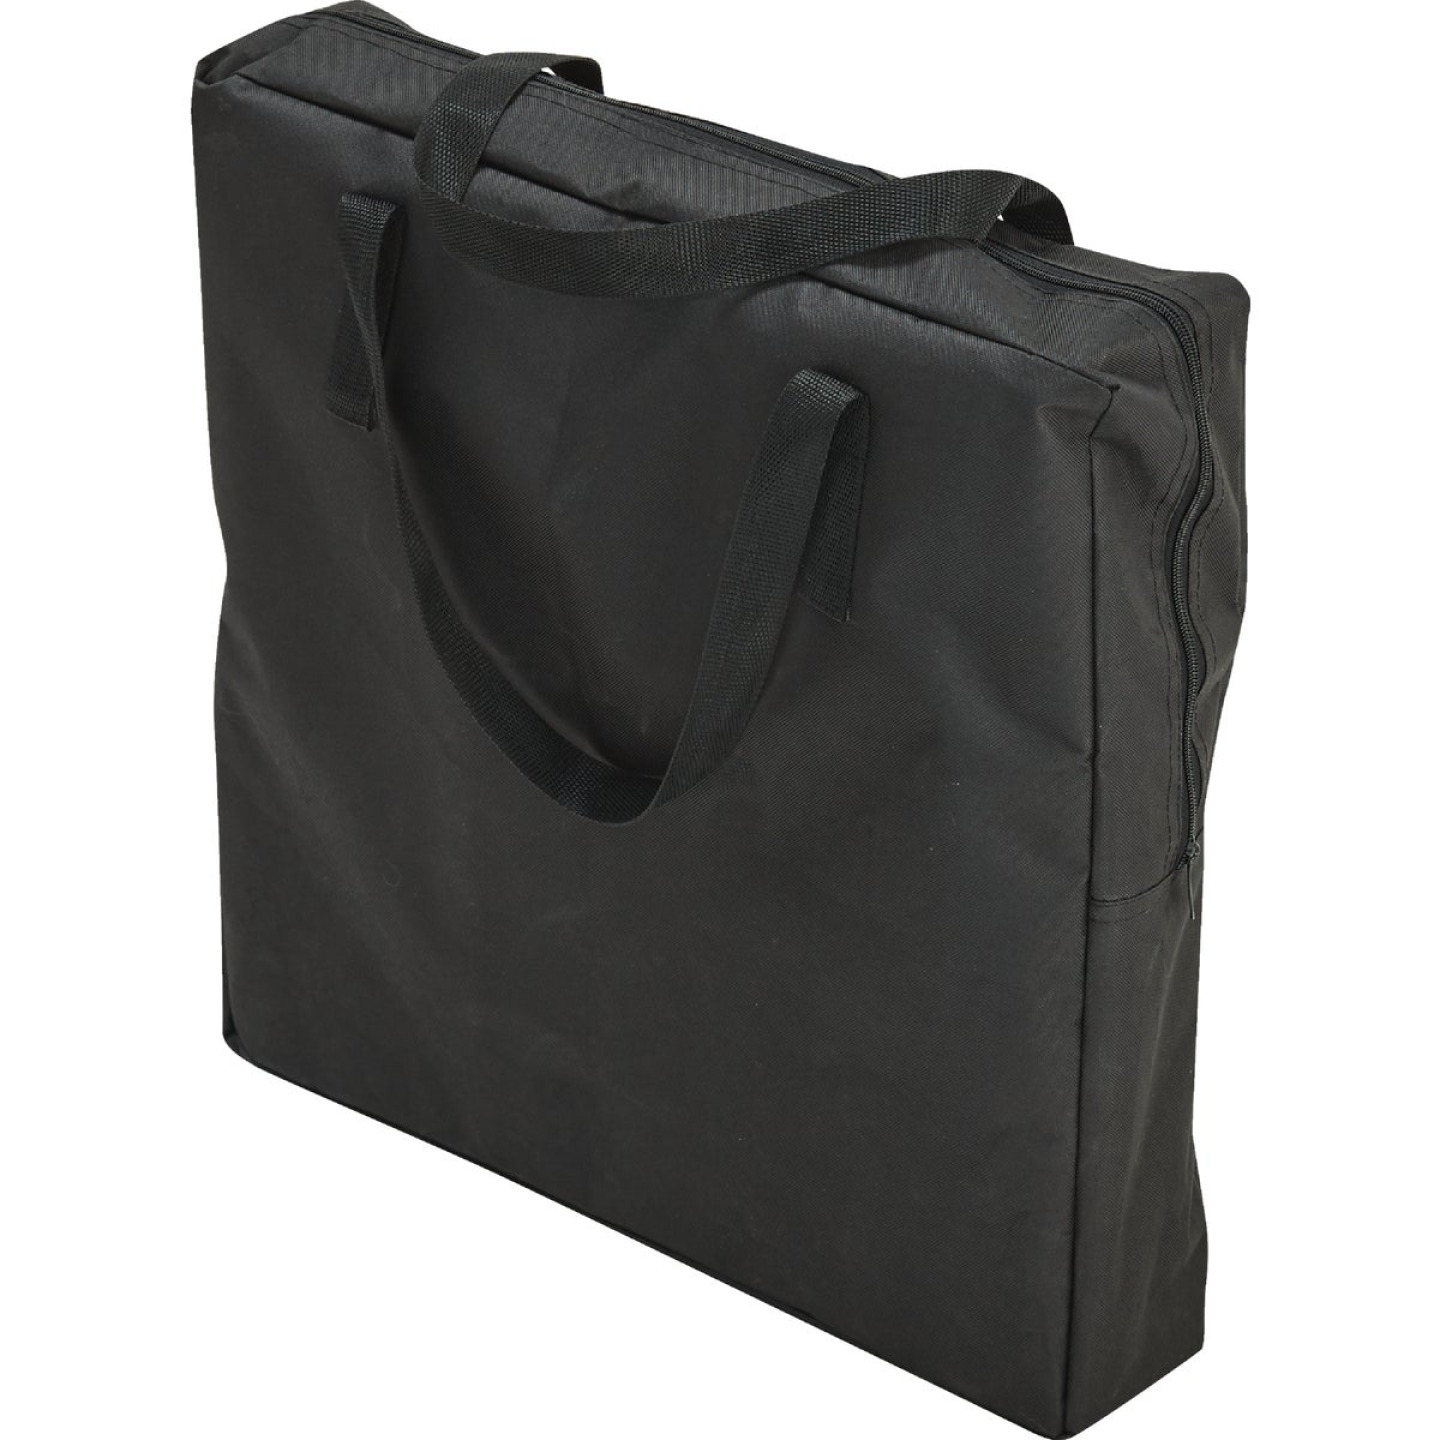 Outdoor Expressions Black Polyester Director Camp Folding Chair with Side Table Image 6